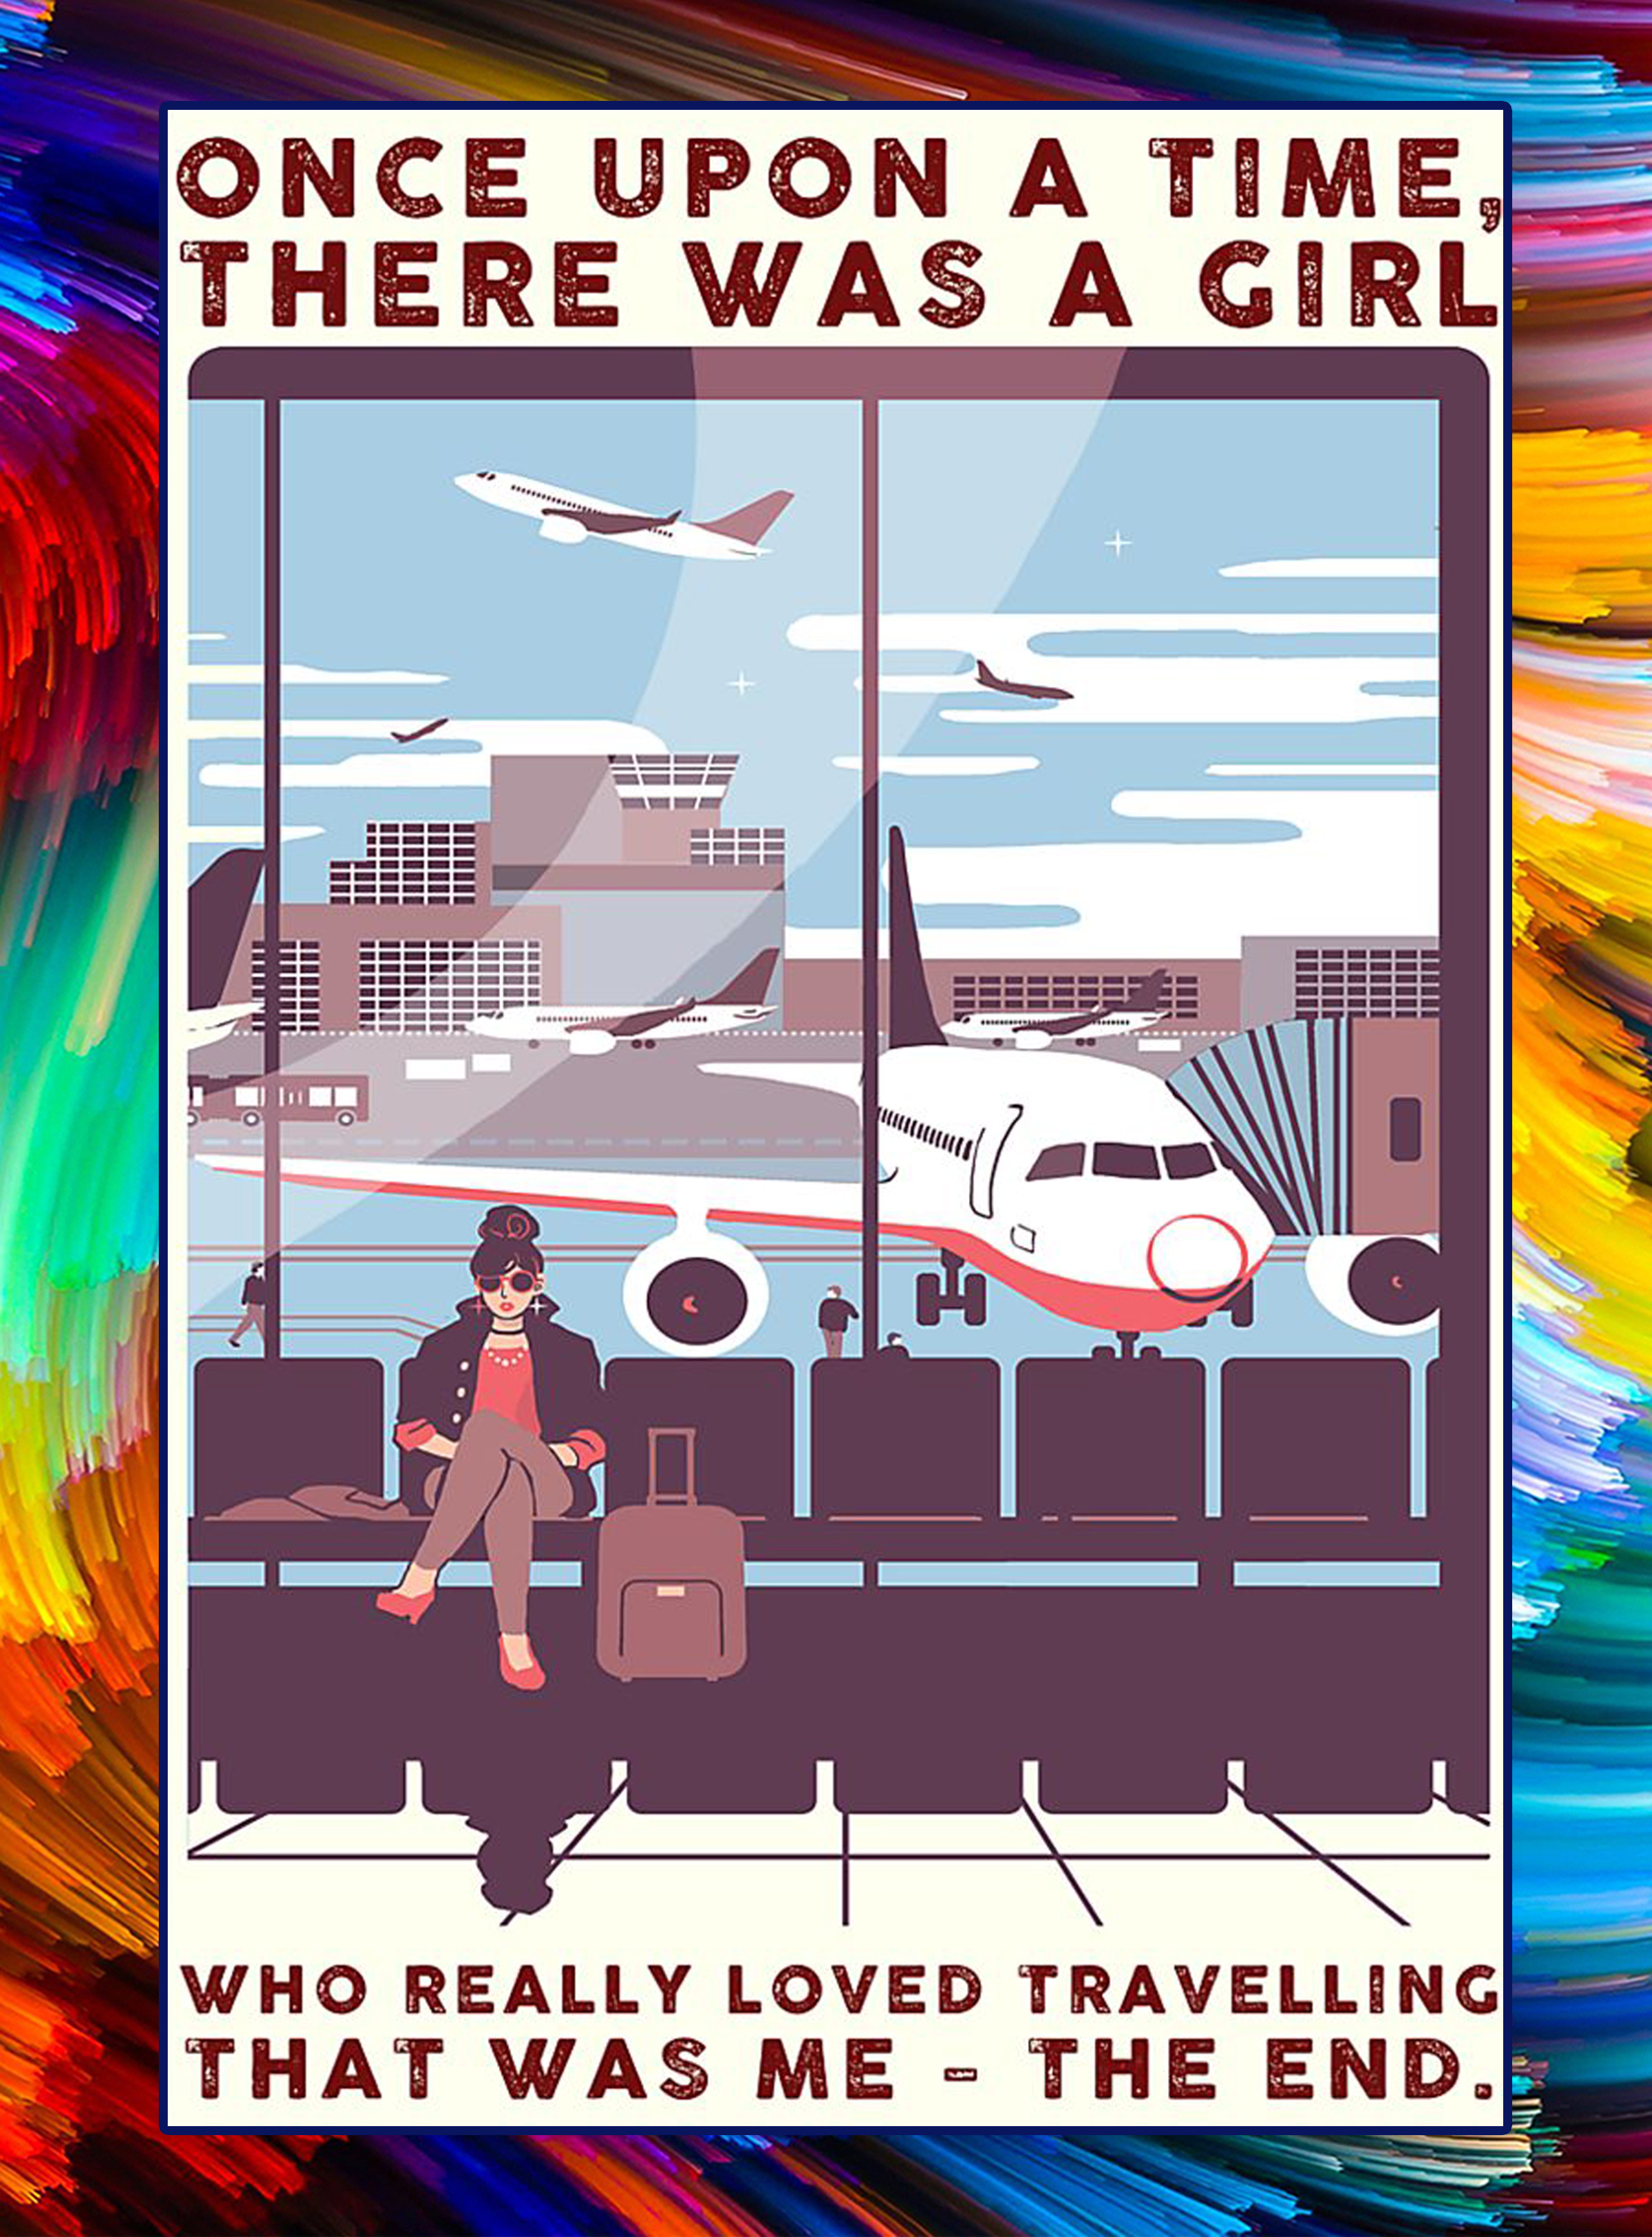 Once upon a time there was a girl who really loved travelling poster - A4